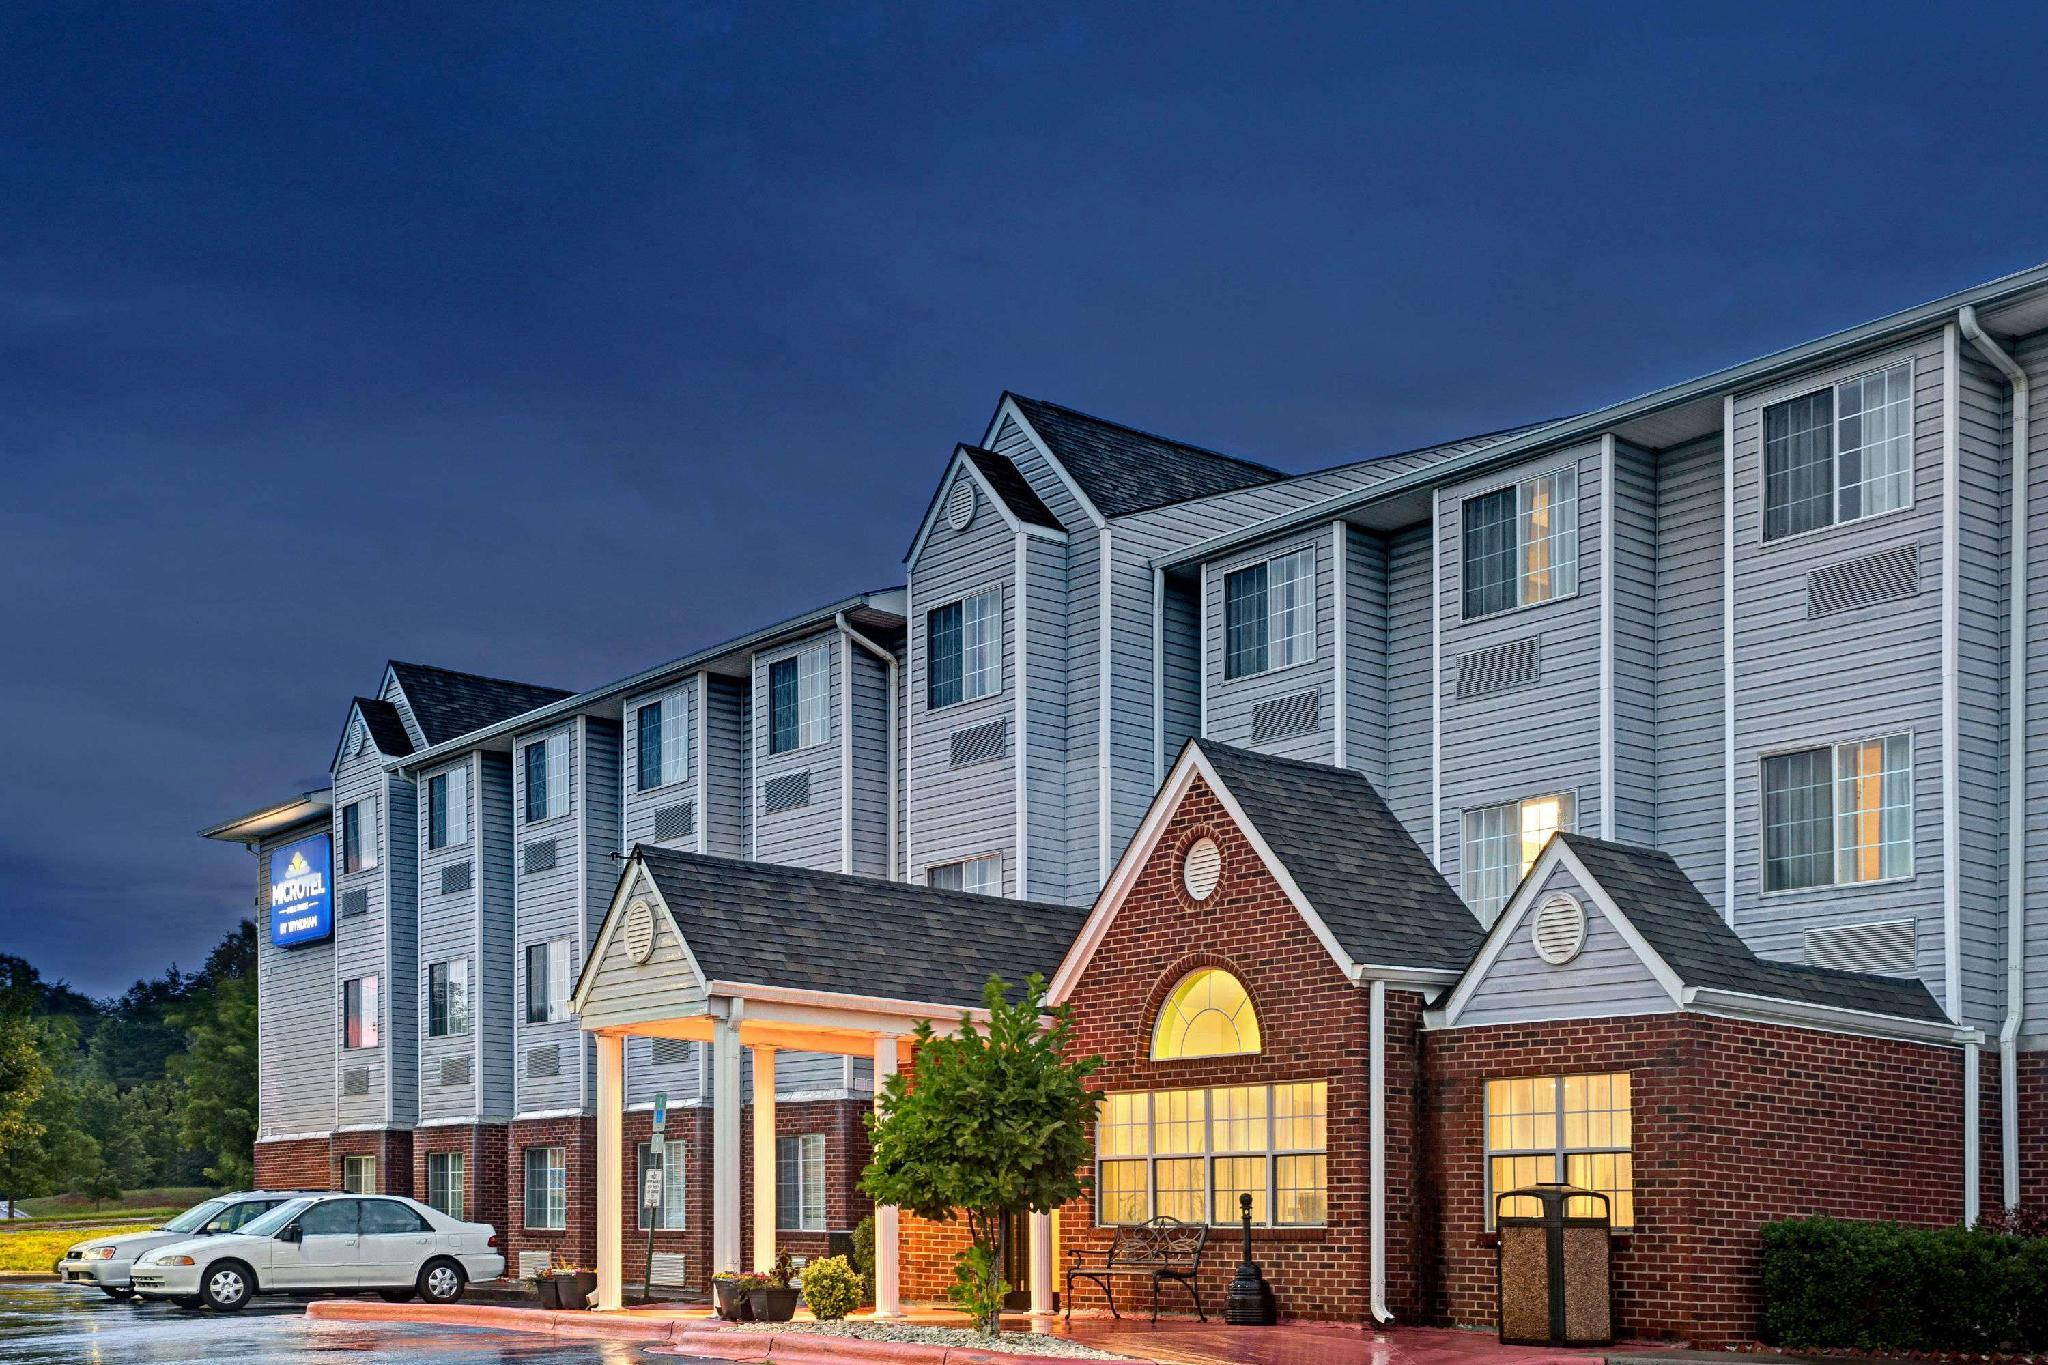 Microtel Inn And Suites By Wyndham Statesville